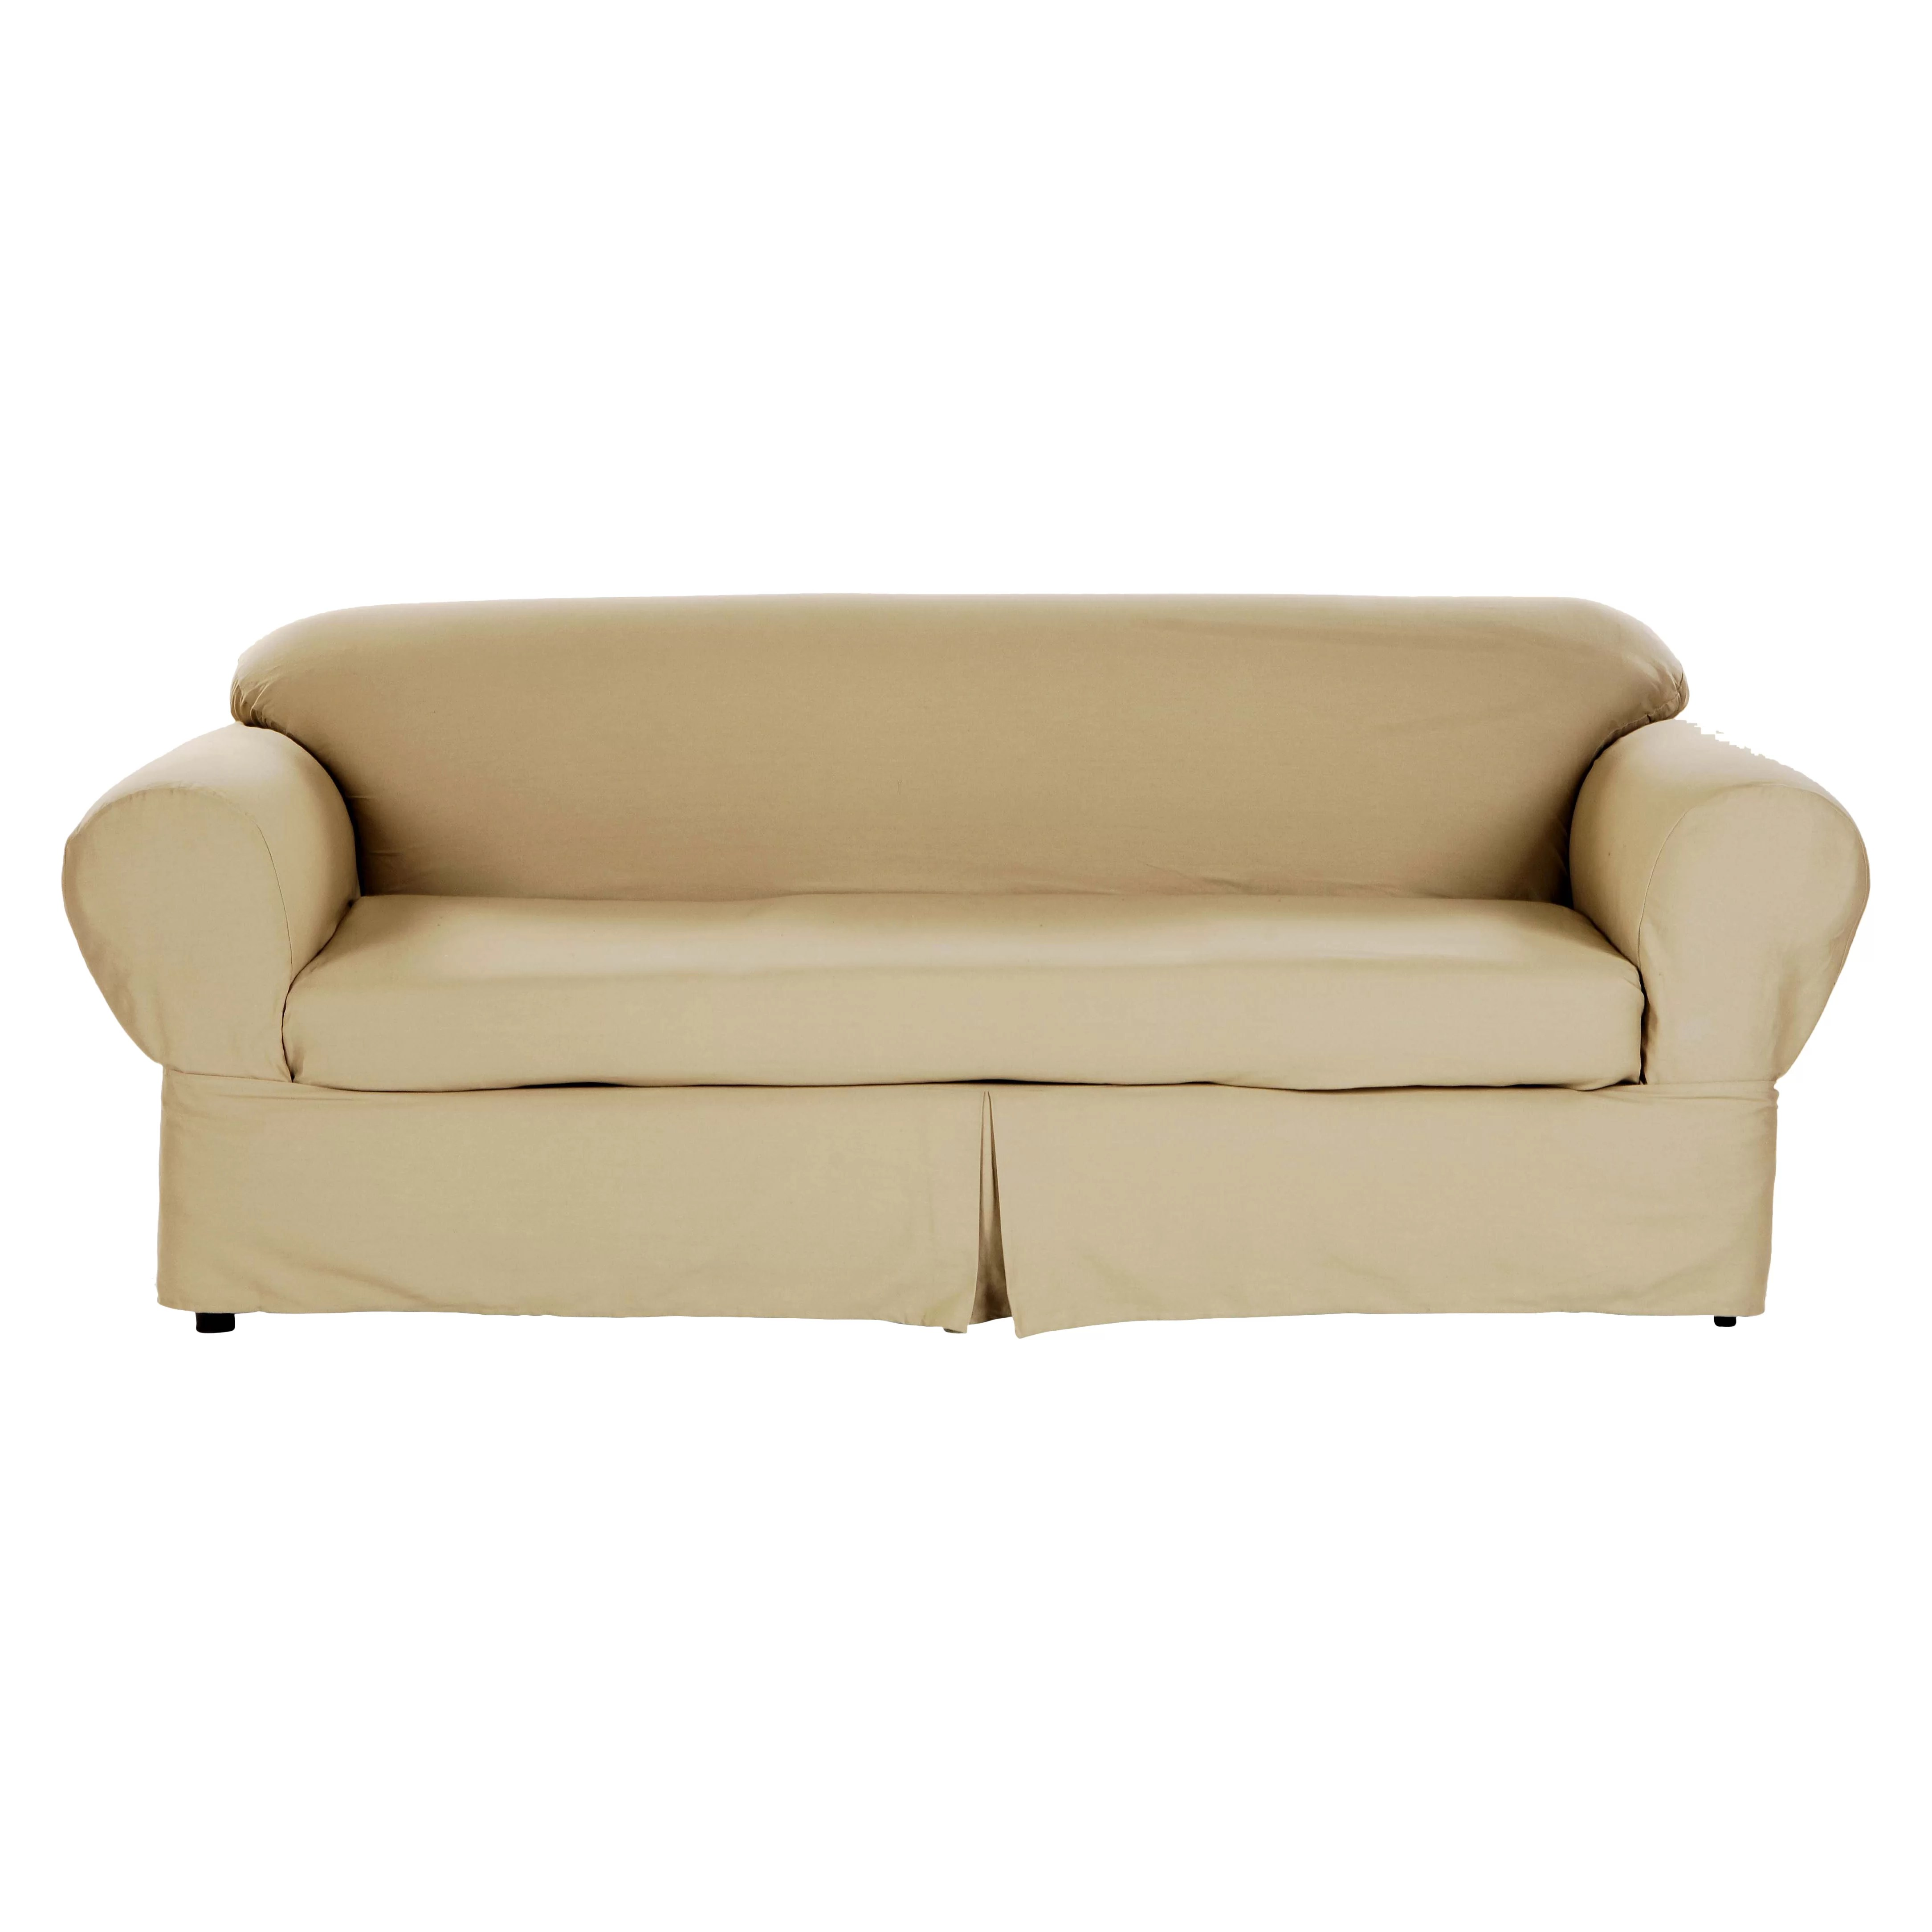 room and board sofa reviews andrew martin sofas second hand darby home co brushed twill slipcover wayfair